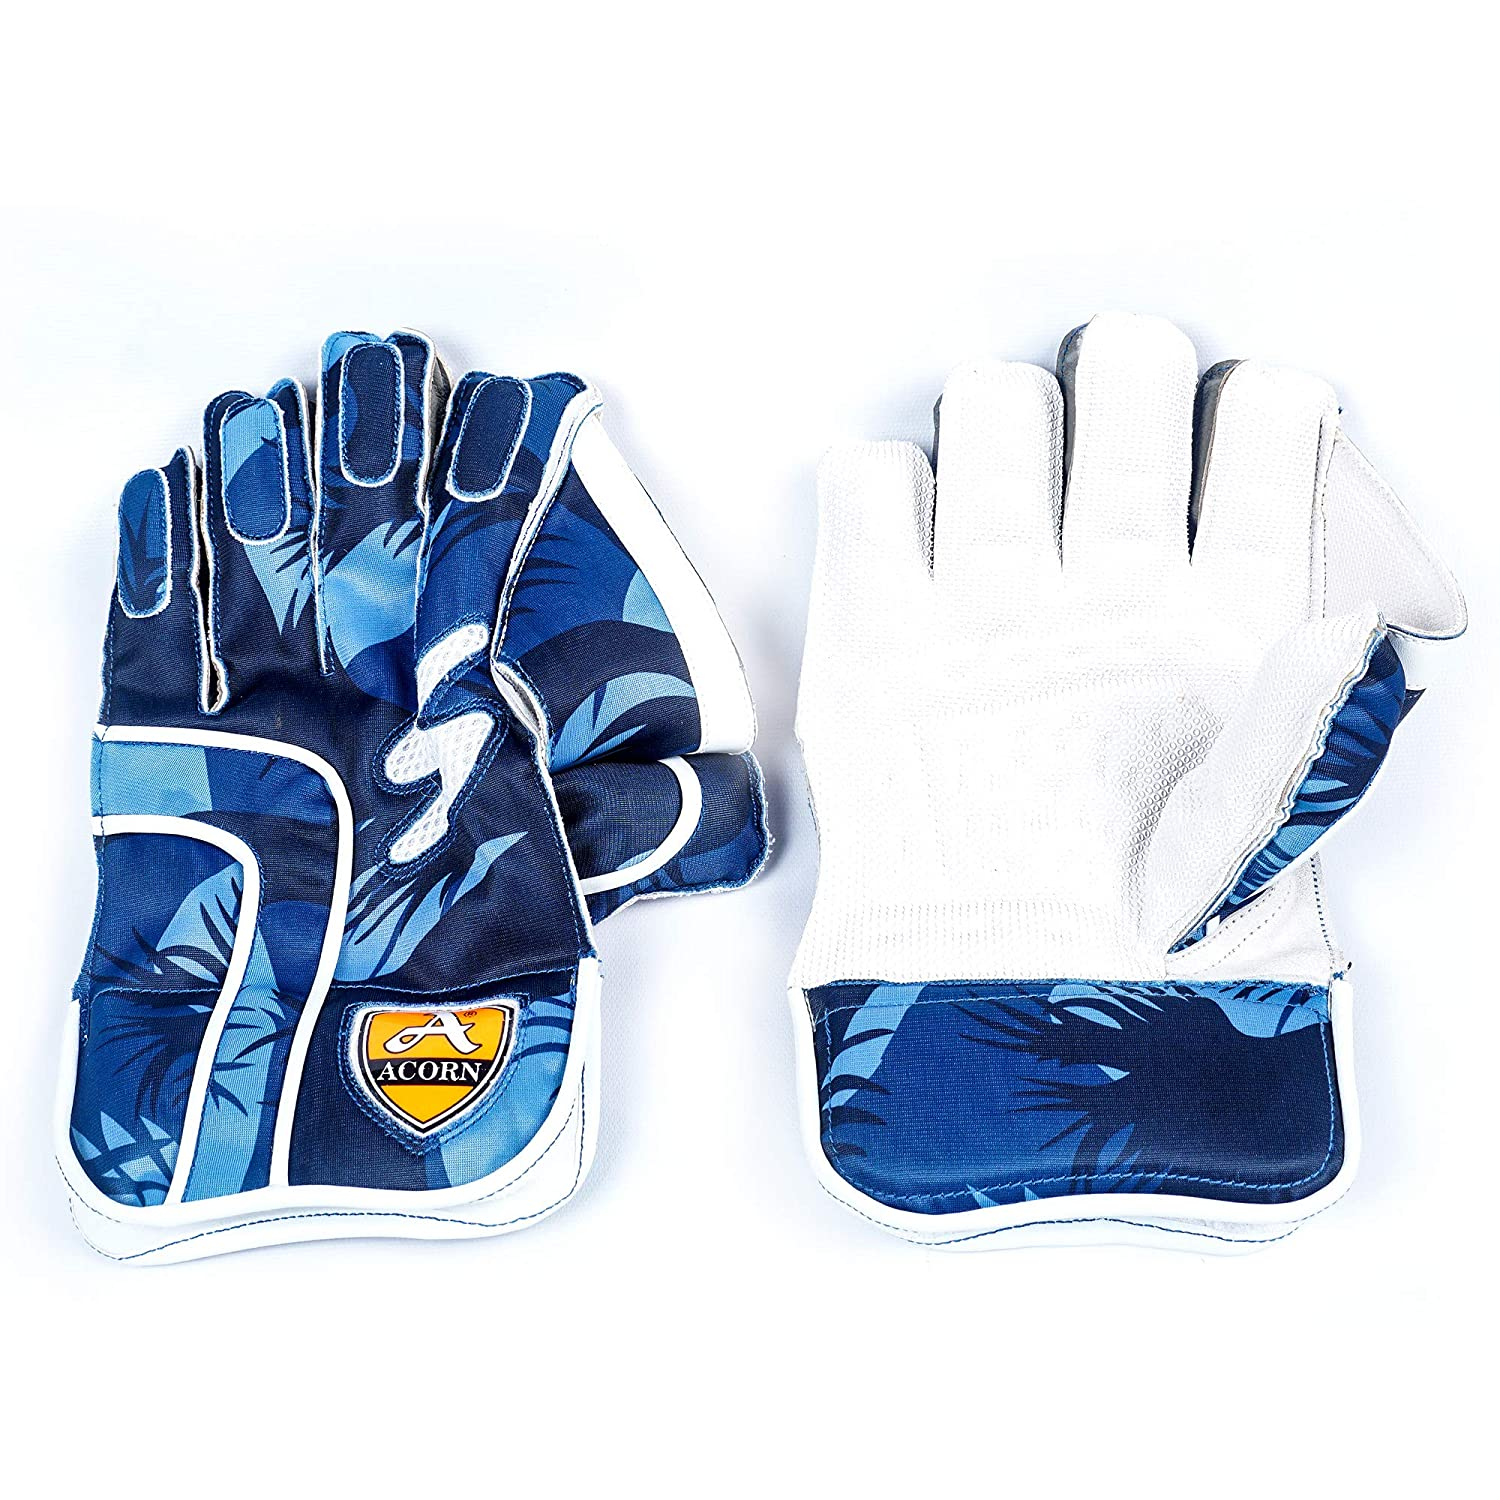 Dhoni Wicket Keeping Gloves - Good Quality